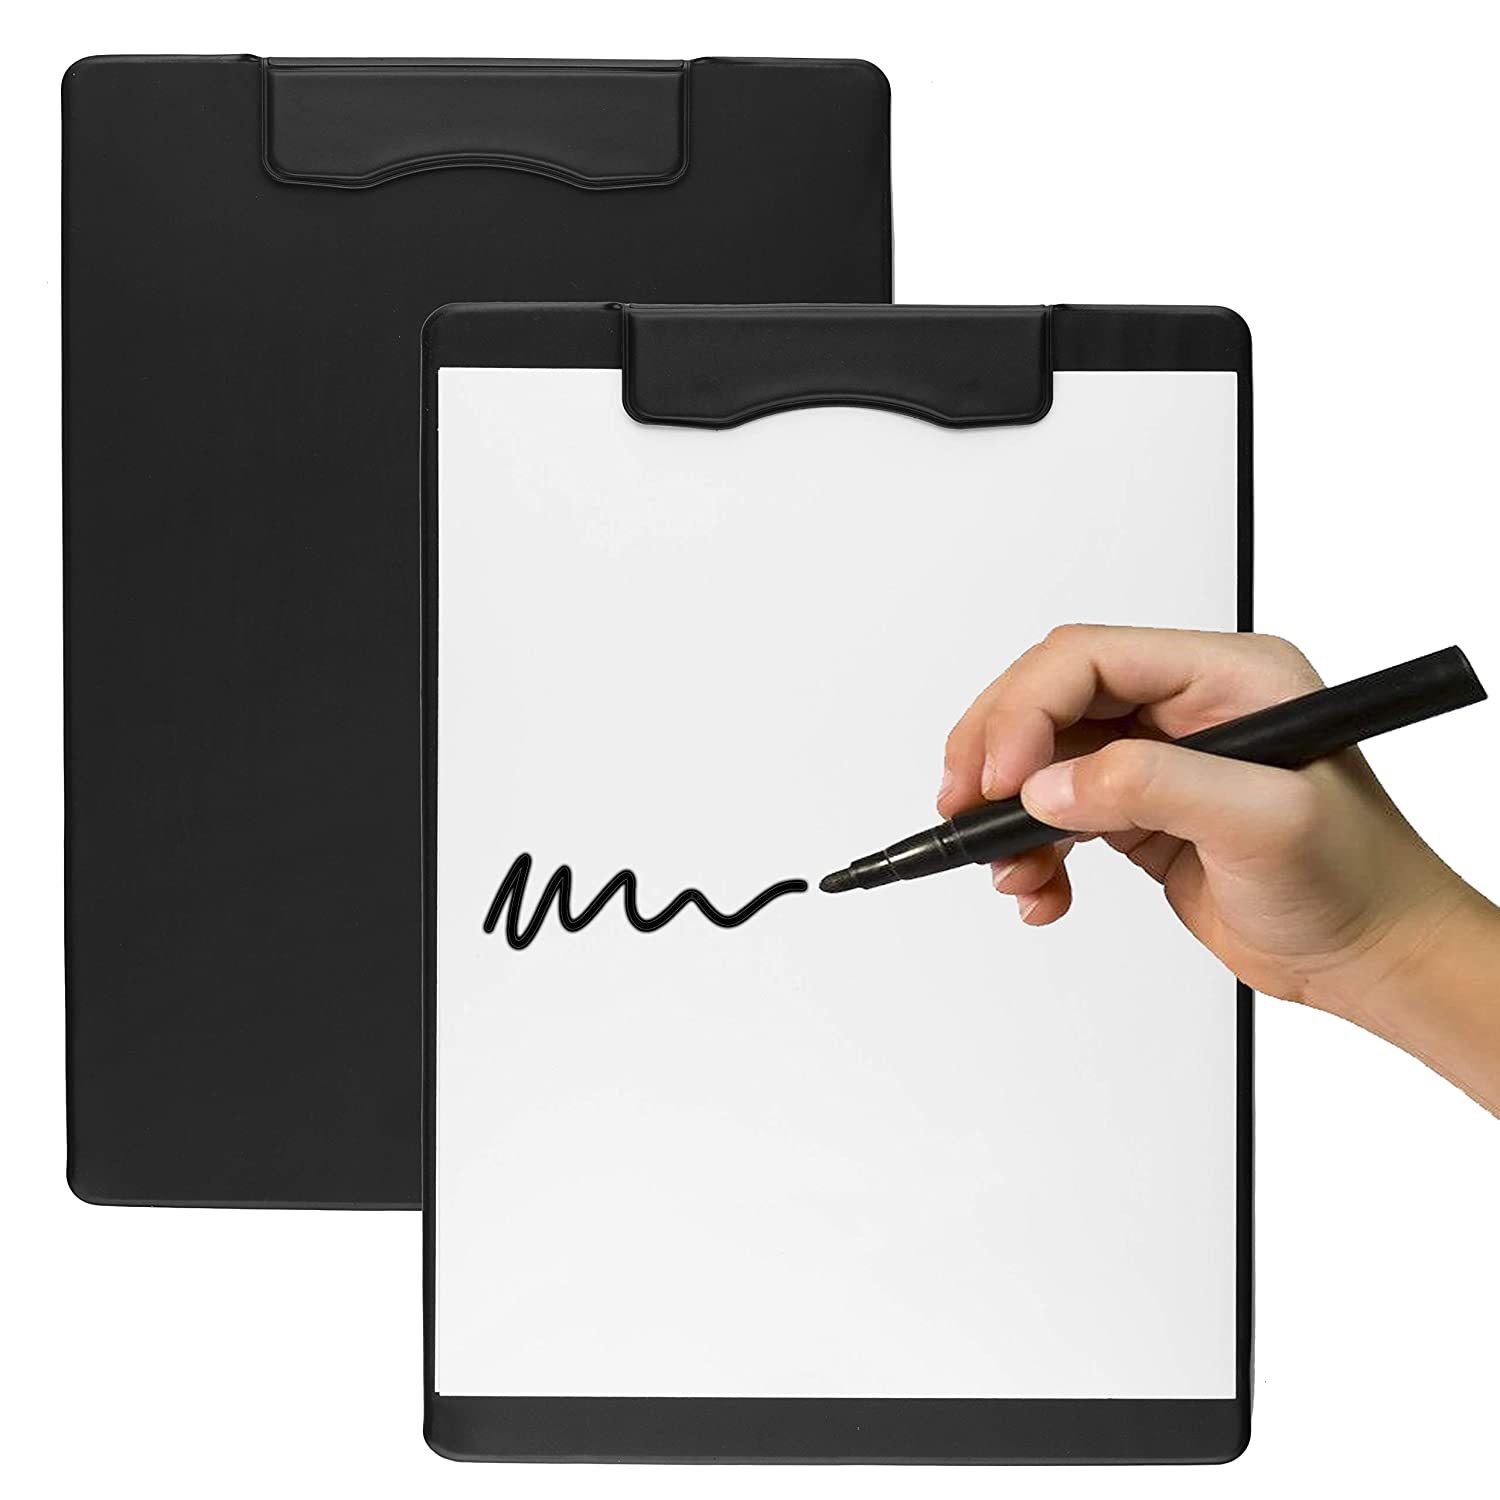 Set of 2 - Paper Size Magnetic Clipboards with Magnetic Profile, Standard A4 Document and Letter Holder, Size 9'' x 12.5''